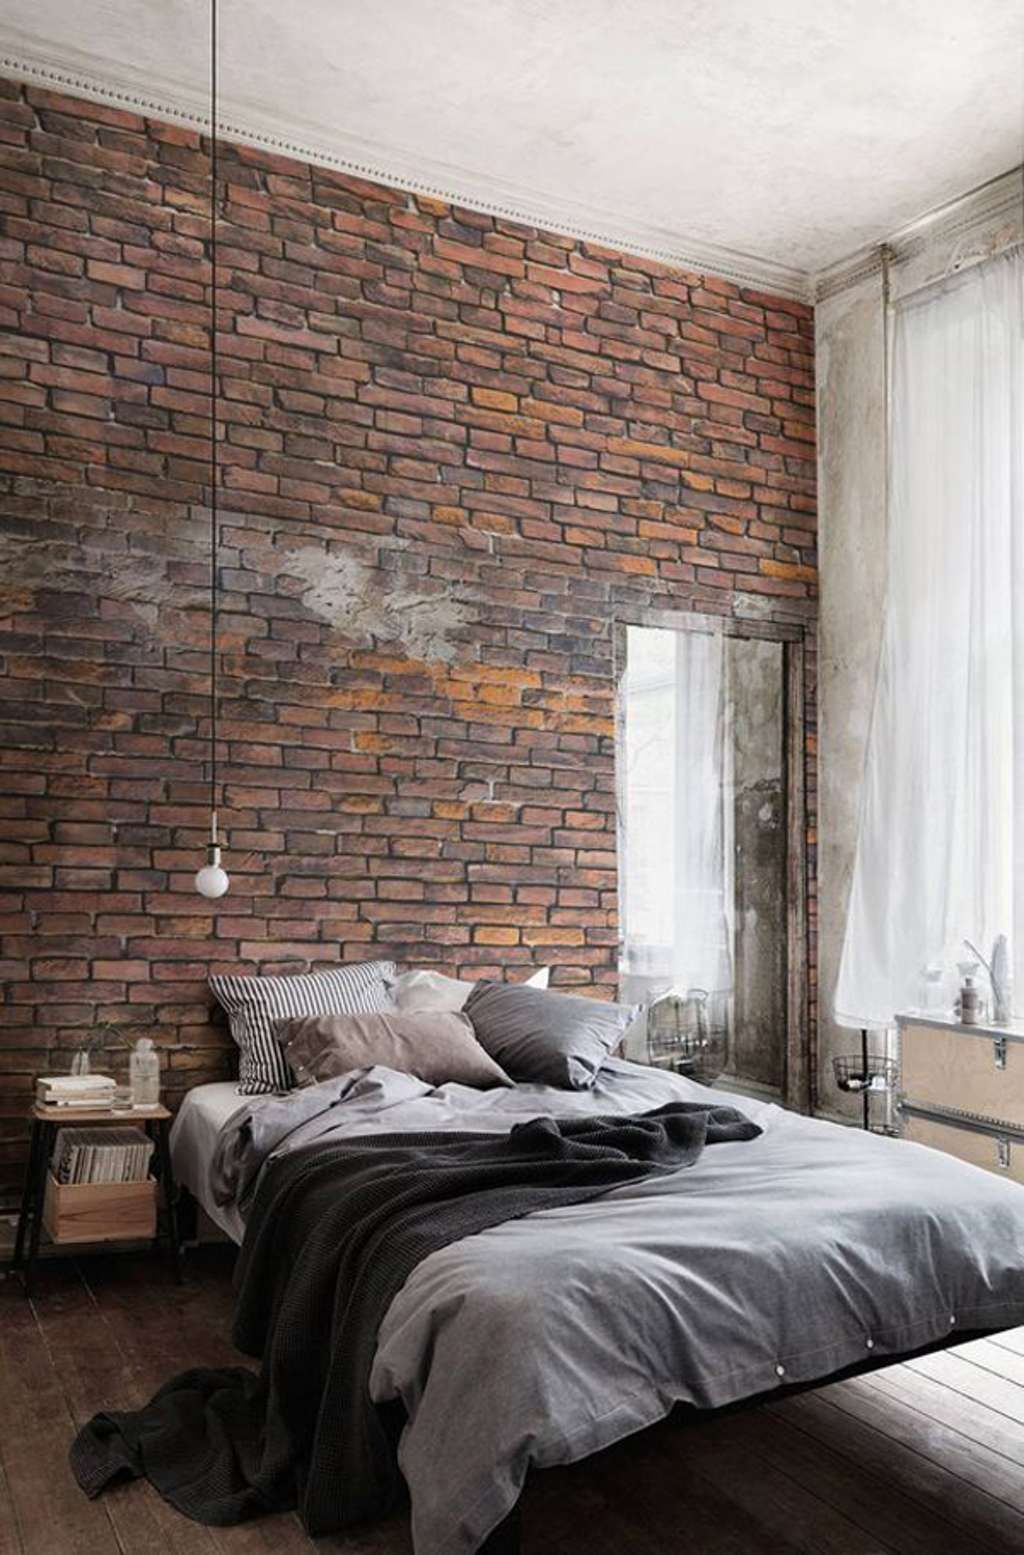 Mens Bedroom Ideas Awesome Bedroom Floating Bed With Brick Wall Decor Masculine Bedroom Of Mens Bedroom Ideas Industrial Bedroom Design Industrial Style Bedroom Minimalism Interior